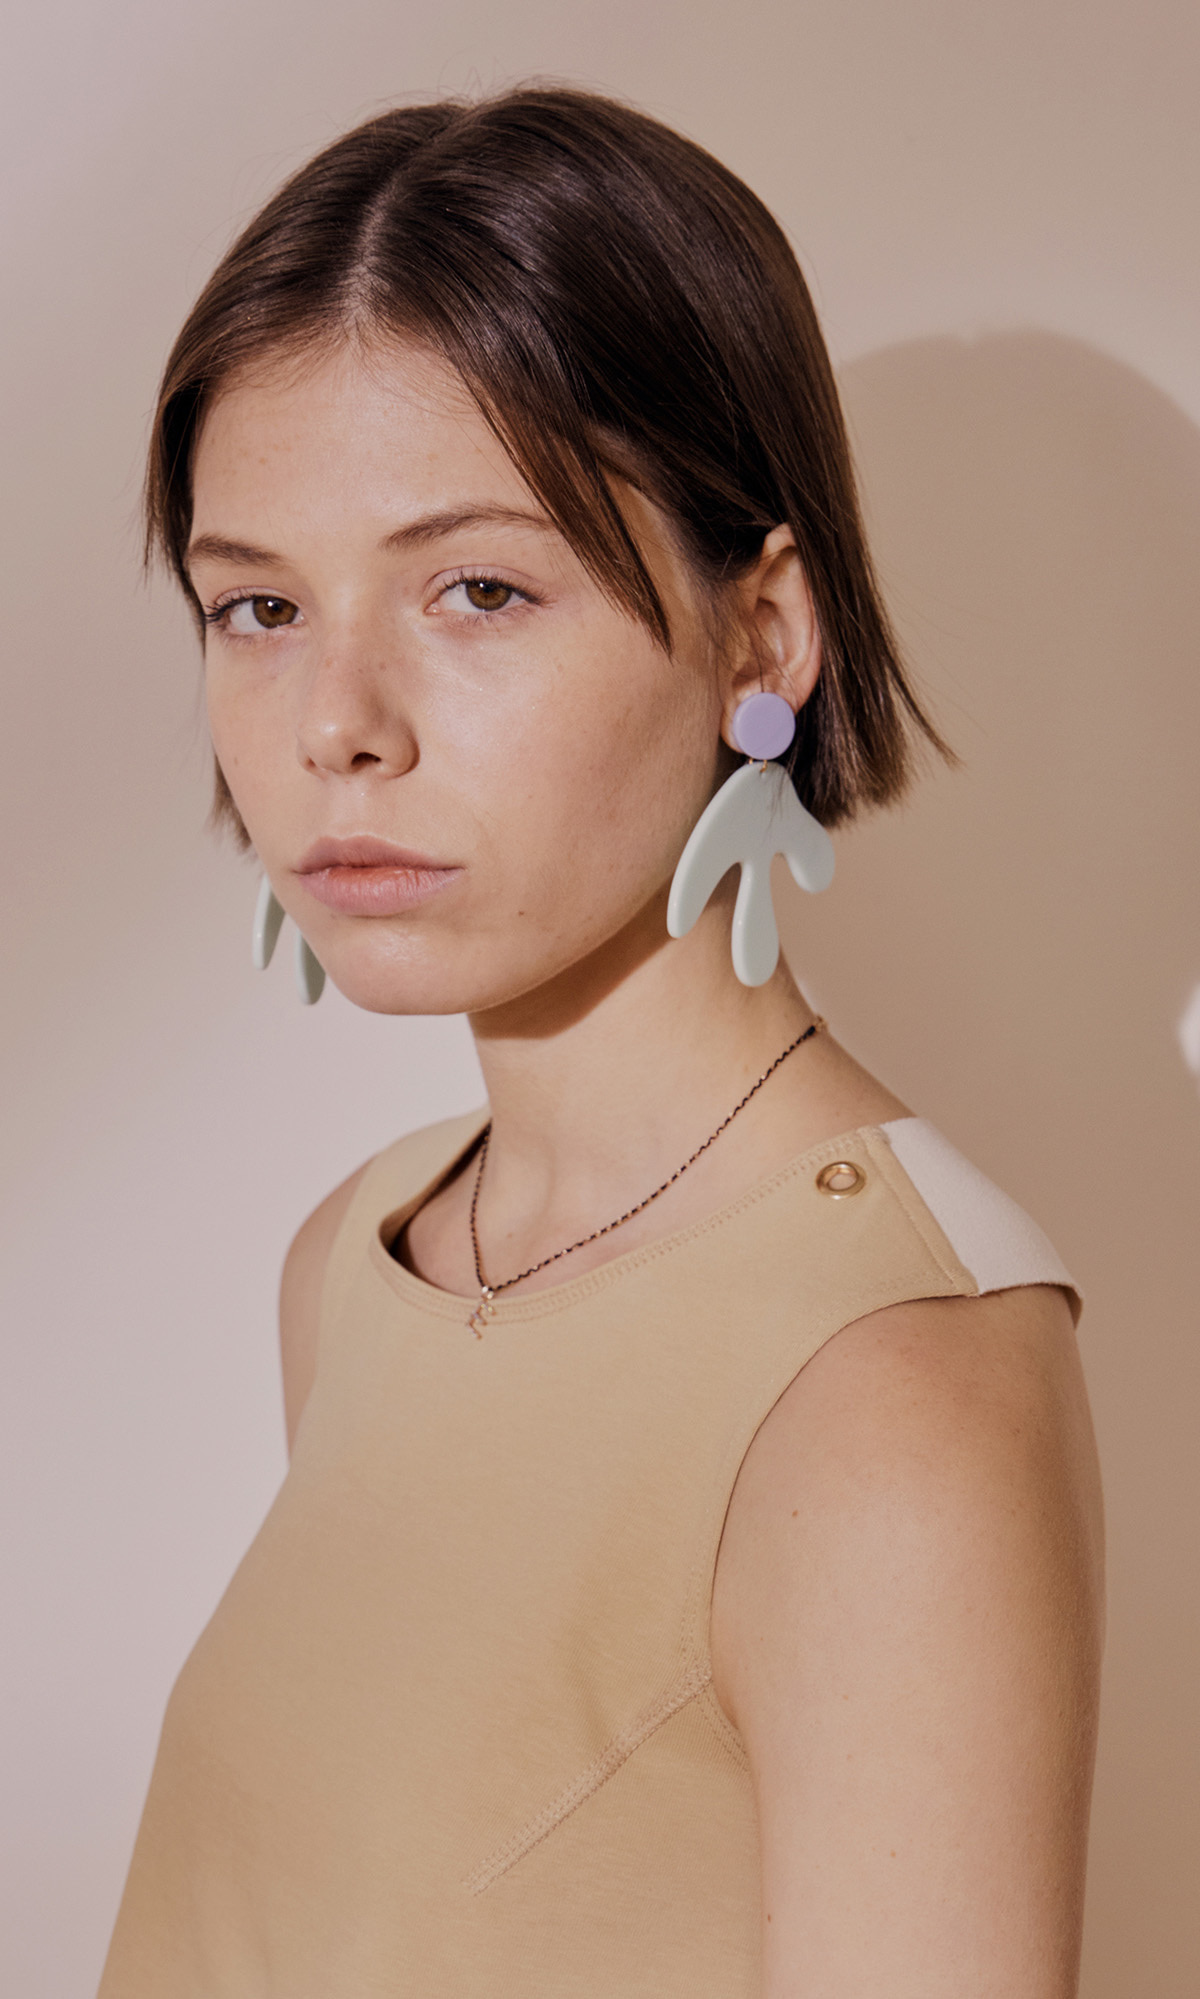 [J.CHUNG X FRUTA] Matisse Monstera Earring_Blue